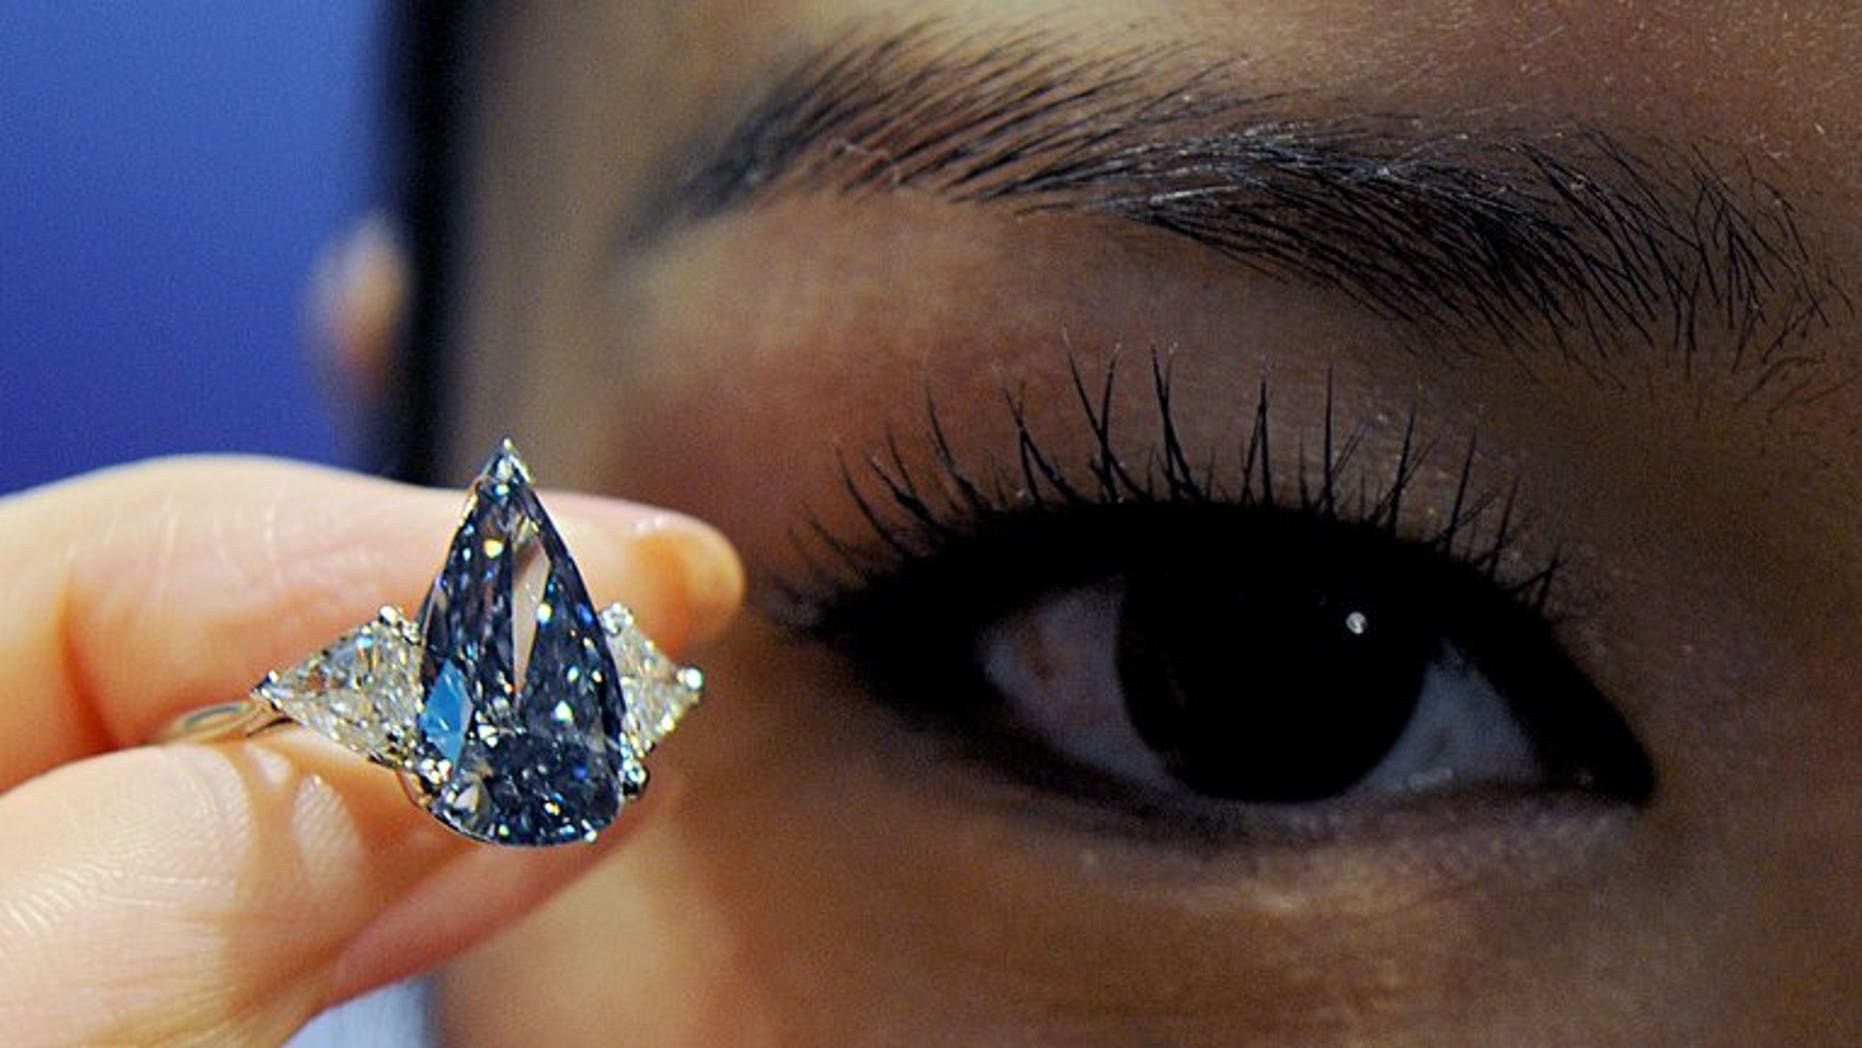 """A model holds a 'De Beers Millennium Blue Diamond' valued at an estimated $ 4.6-5.9 mn in Hong Kong in 2010. The world's top diamond producer De Beers on Friday reported """"steady"""" total first-half sales of $3.3 billion (2.5 billion euros), unchanged from the outcome in the first half of 2012."""